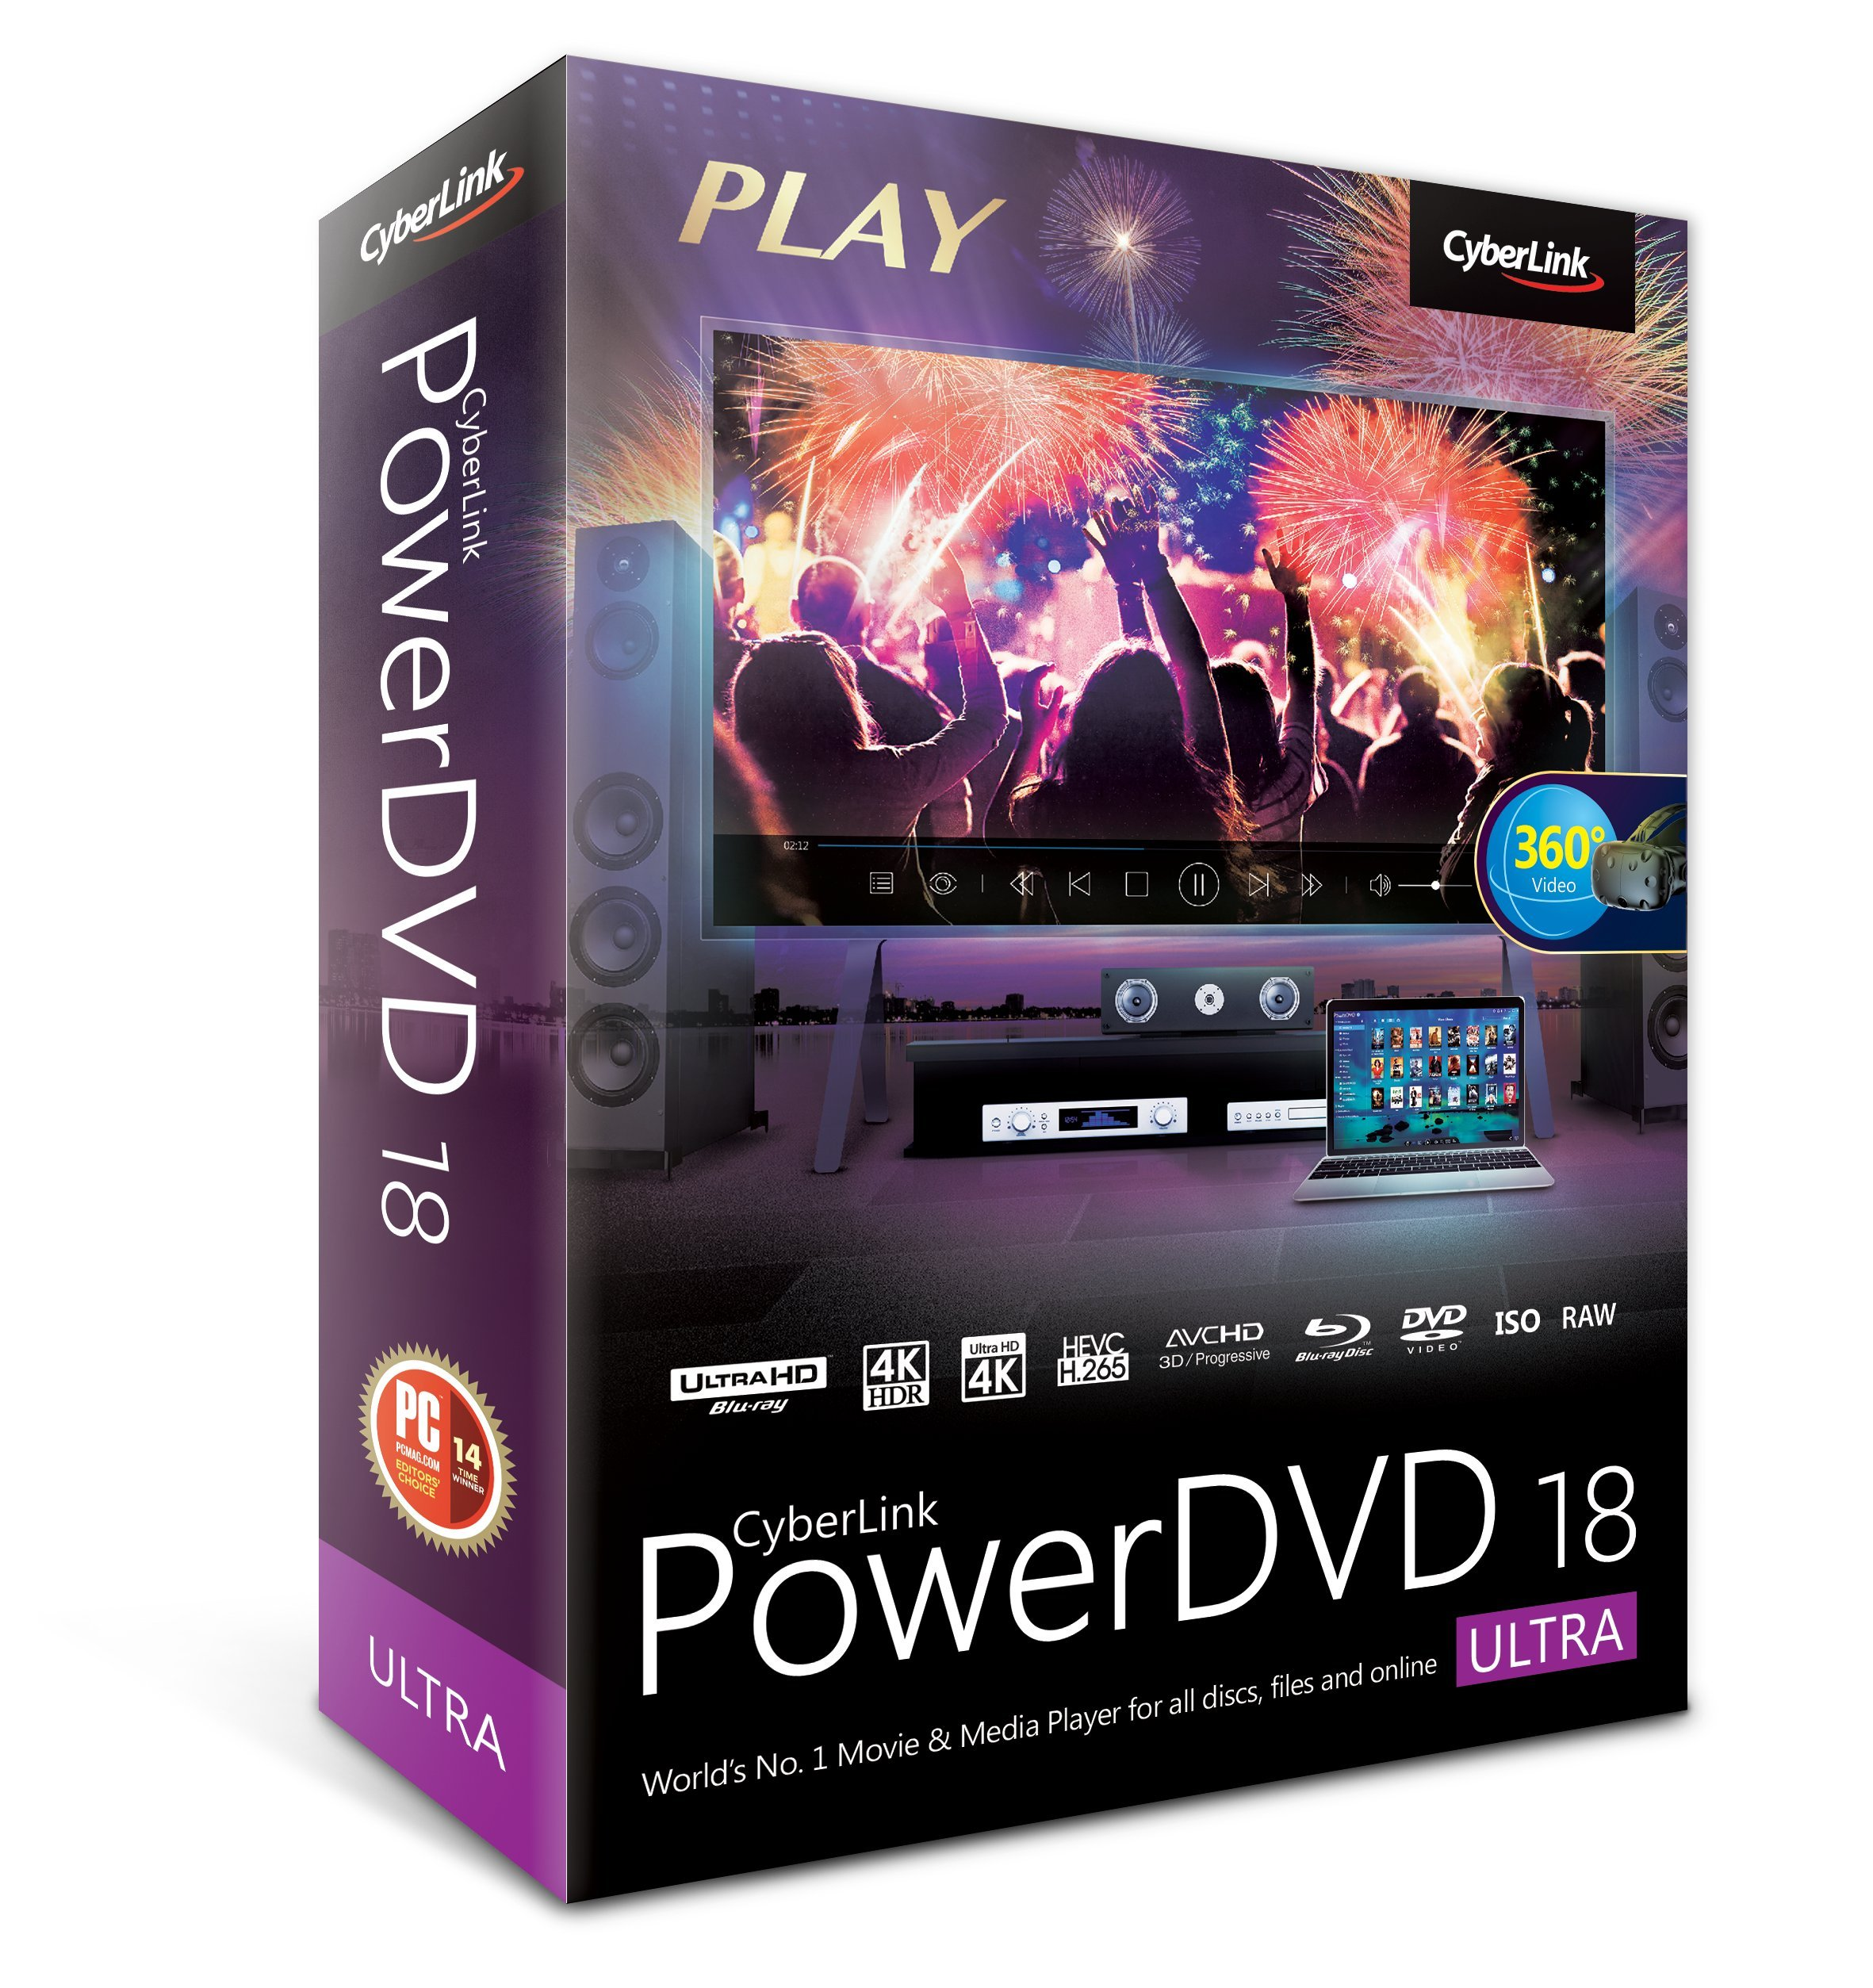 Cyberlink PowerDVD 18 Ultra: Most Powerful Media Player For PCs by Cyberlink